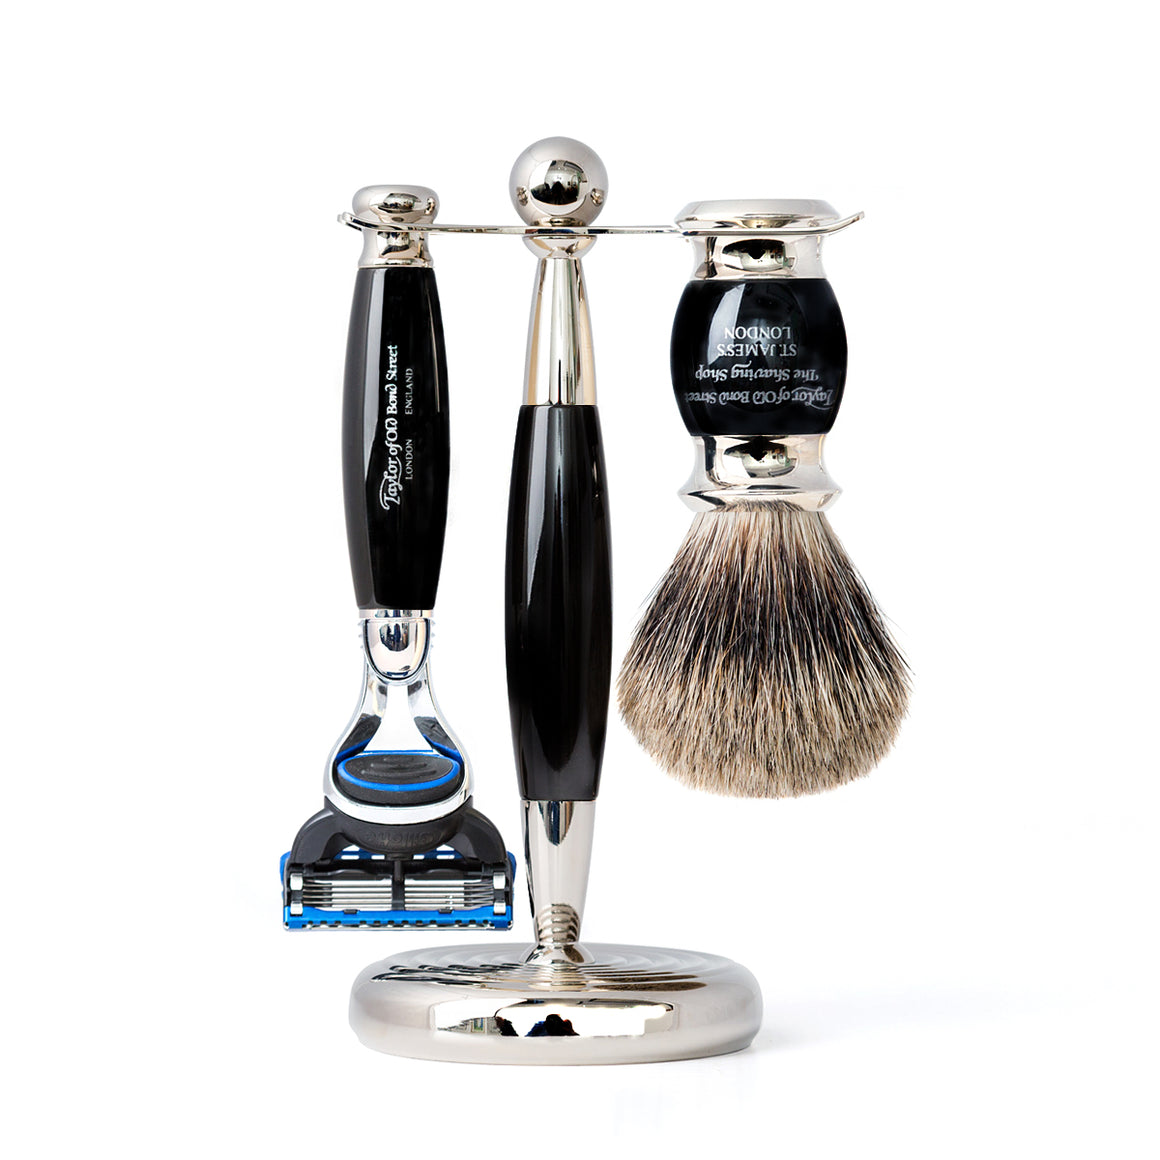 Taylor of Old Bond Street Pure Fusion Edwardian Shaving Set in Black